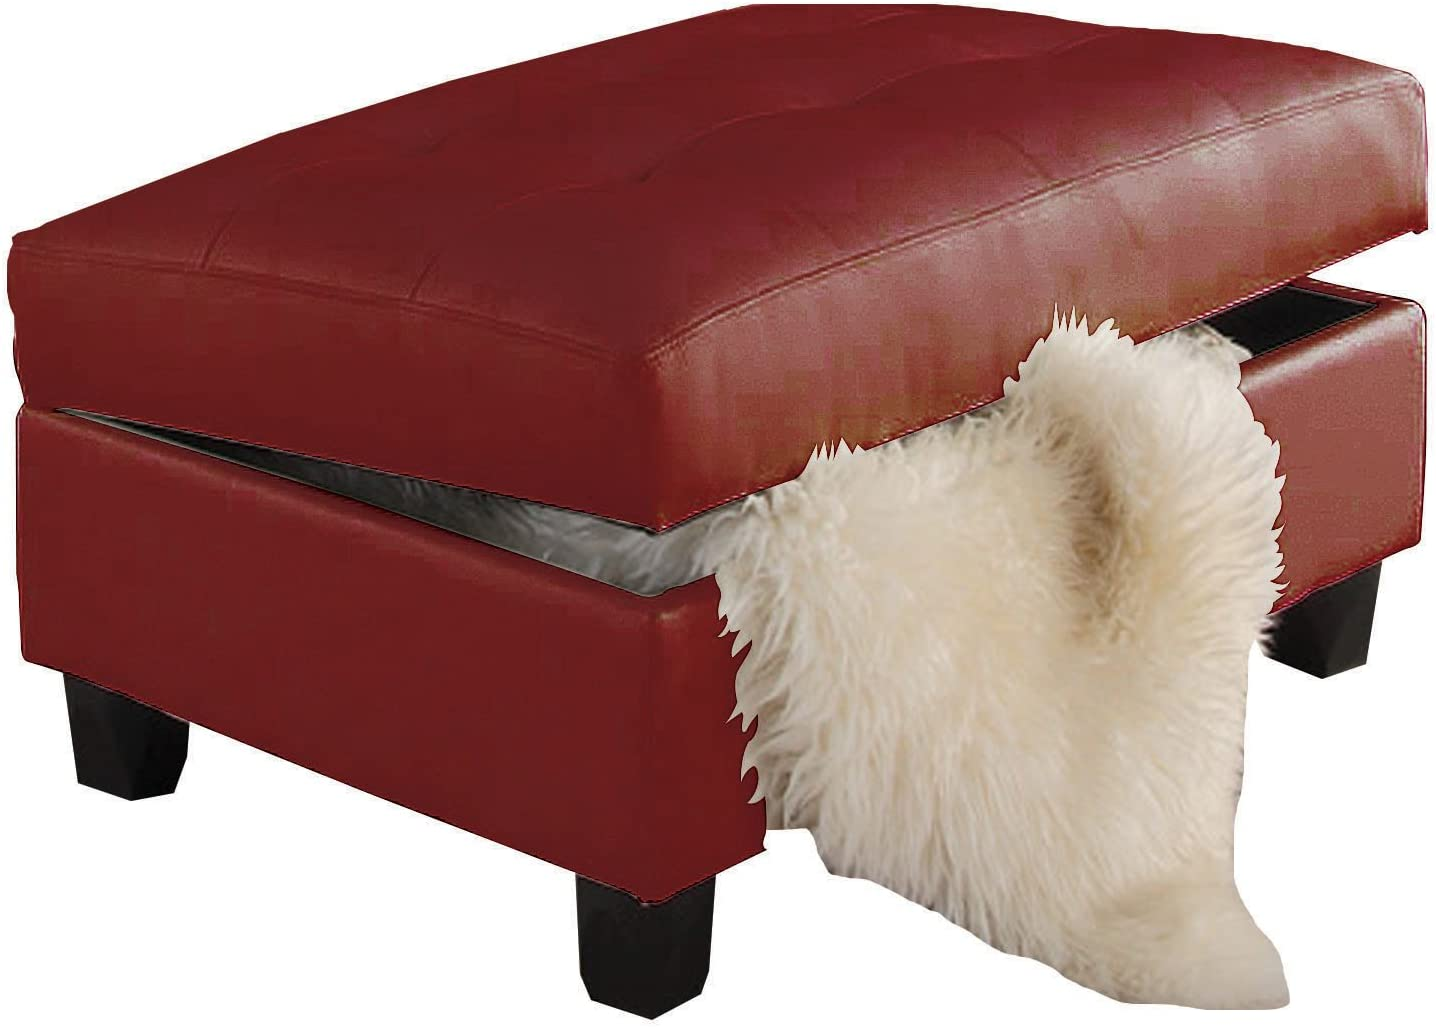 ACME Red Bonded Leather Ottoman with Storage